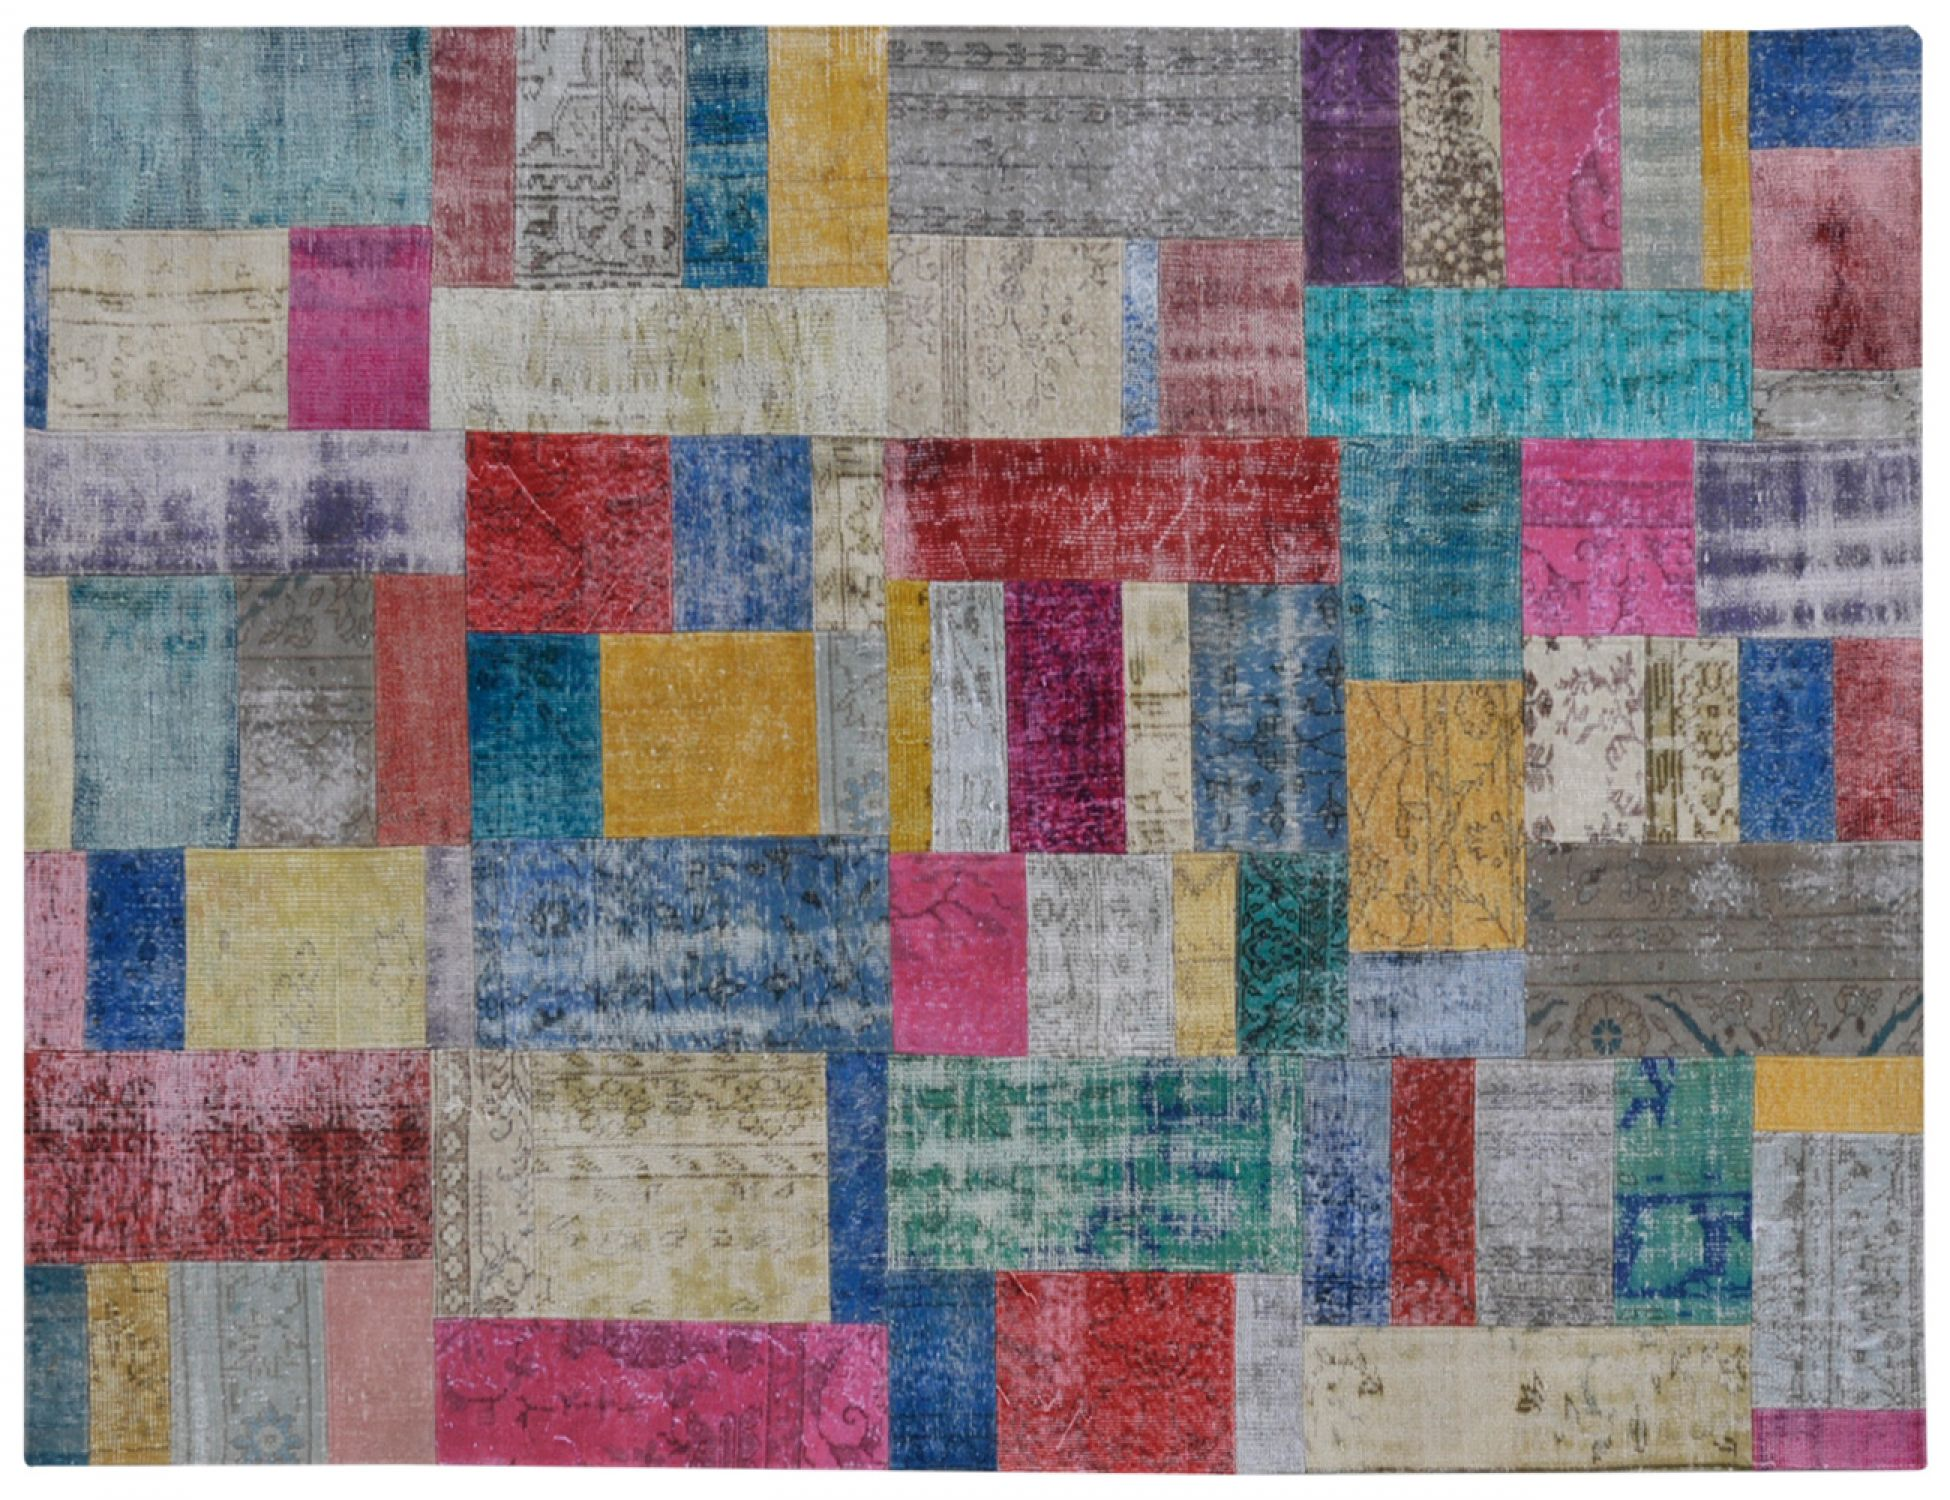 Patchwork Matto  monivärinen <br/>301 x 203 cm